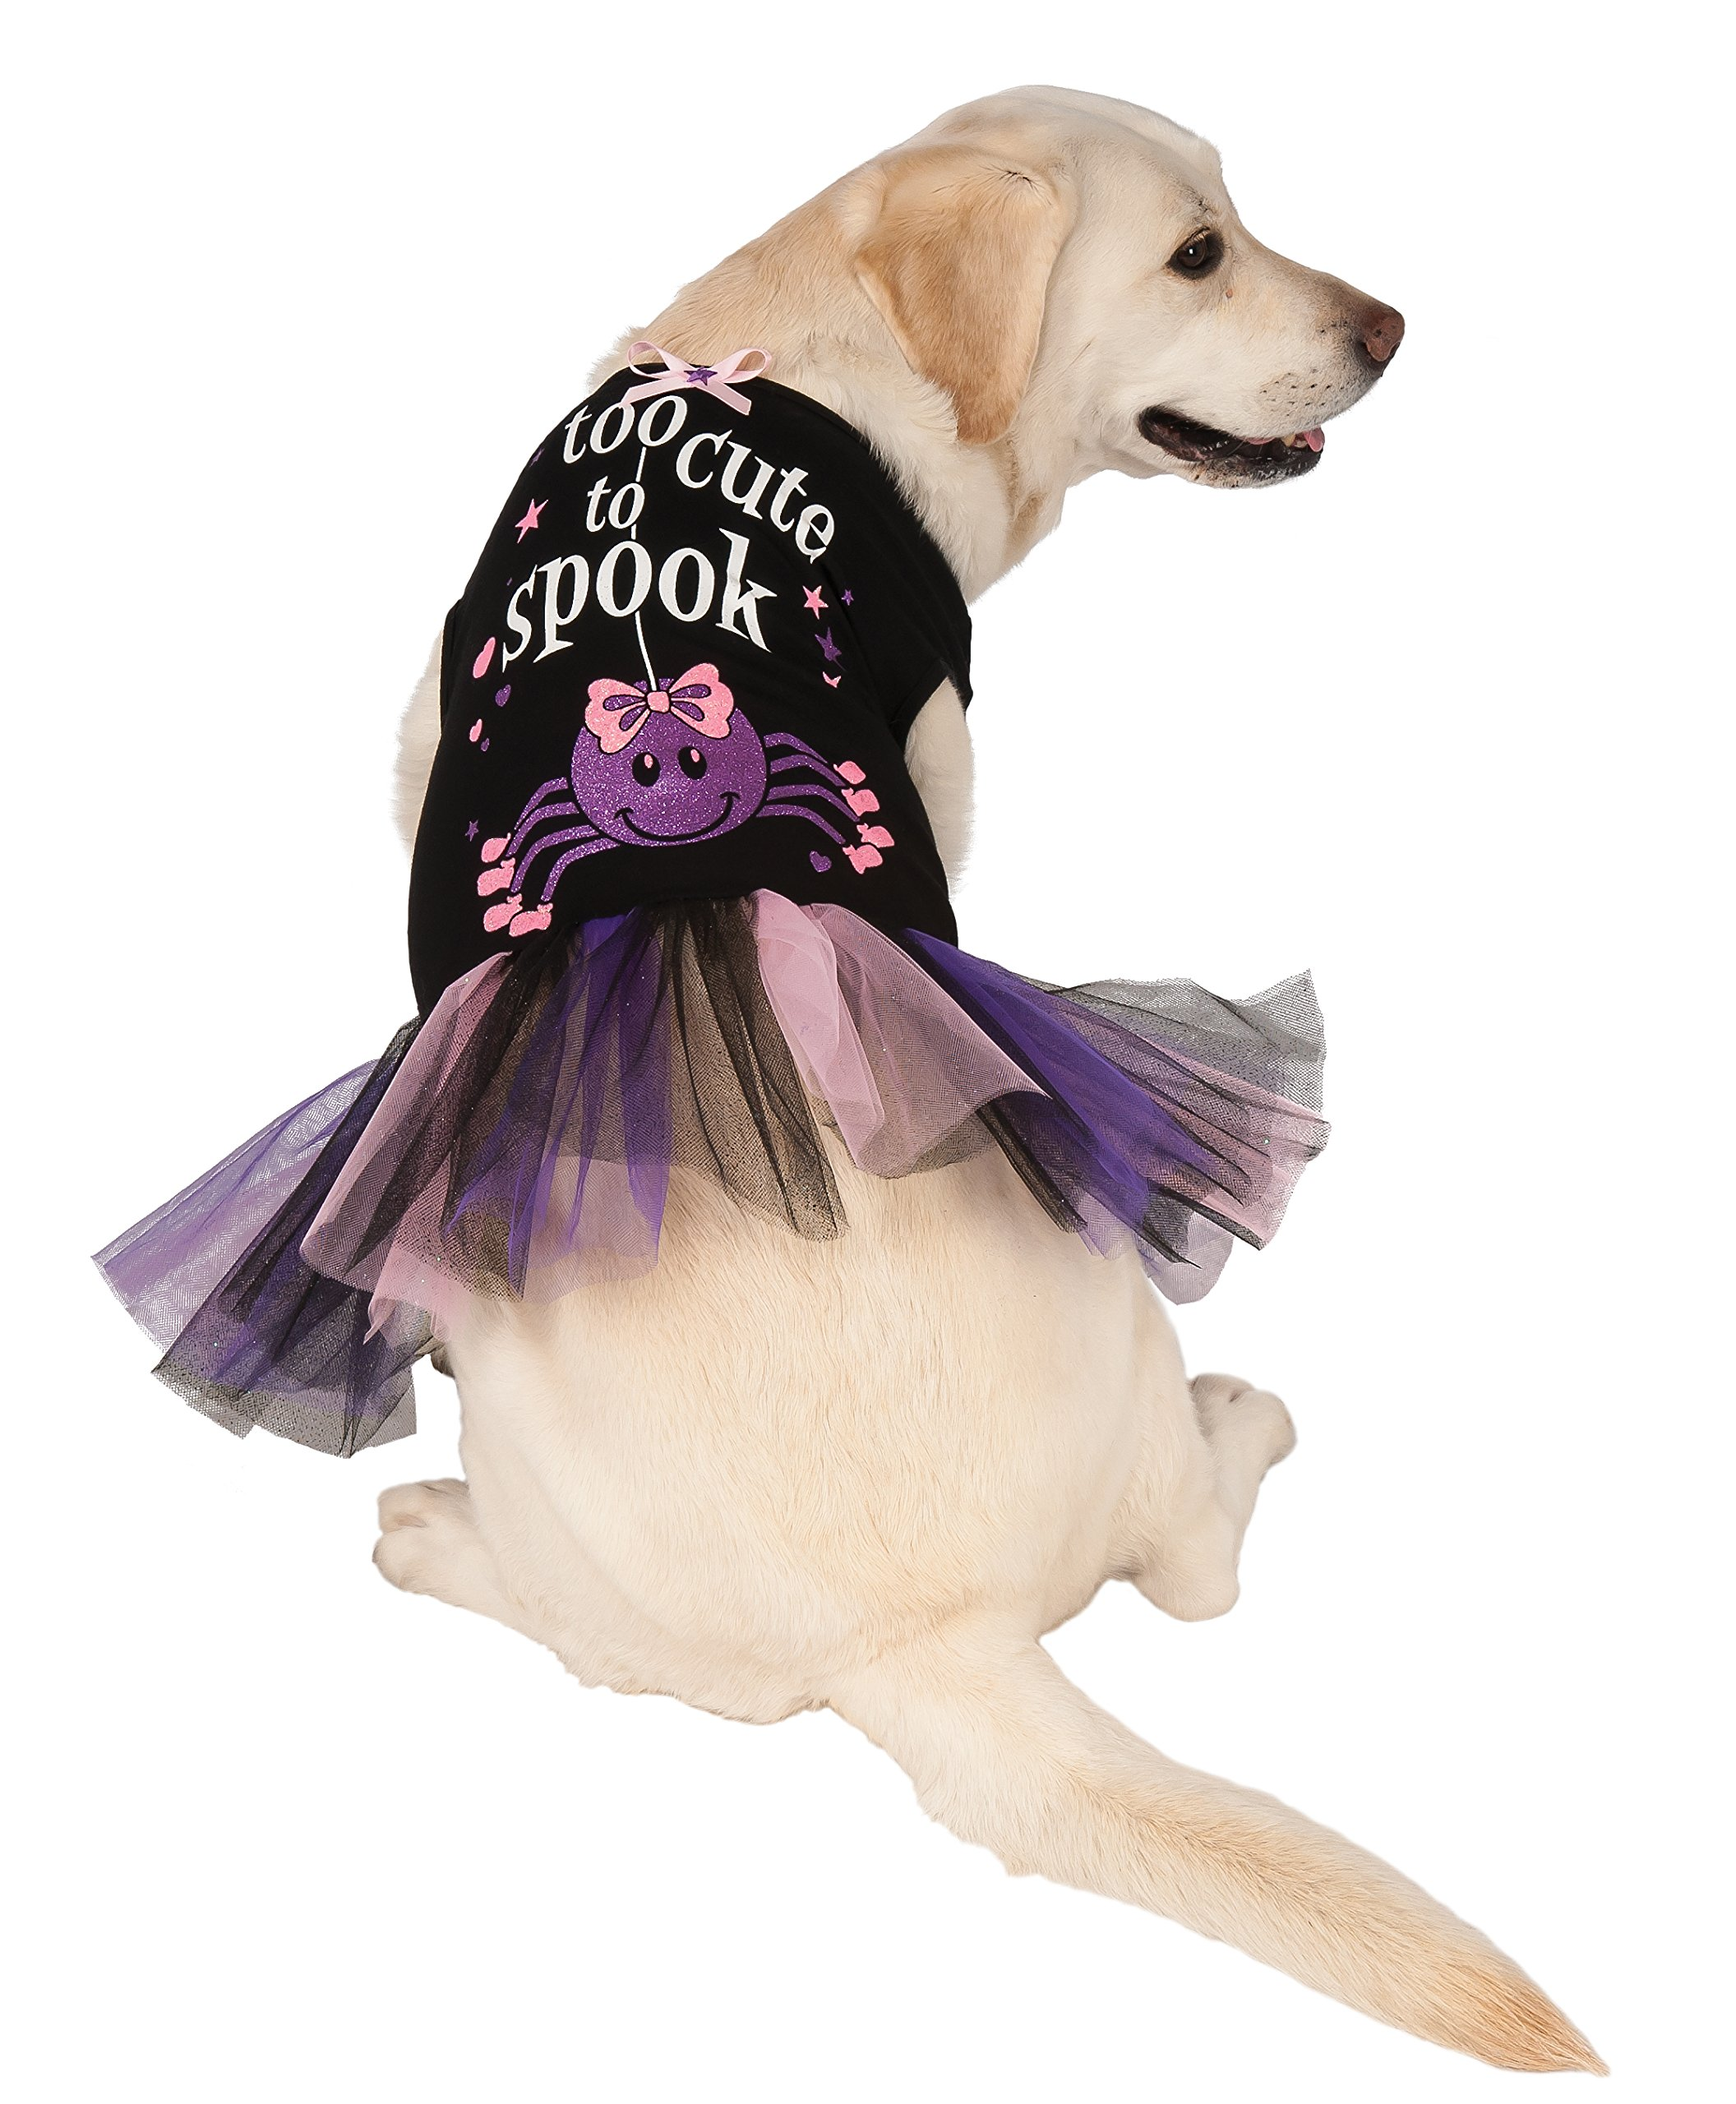 Rubie's Too Cute to Spook Pet Costume, Large, Multicolor by Rubie's